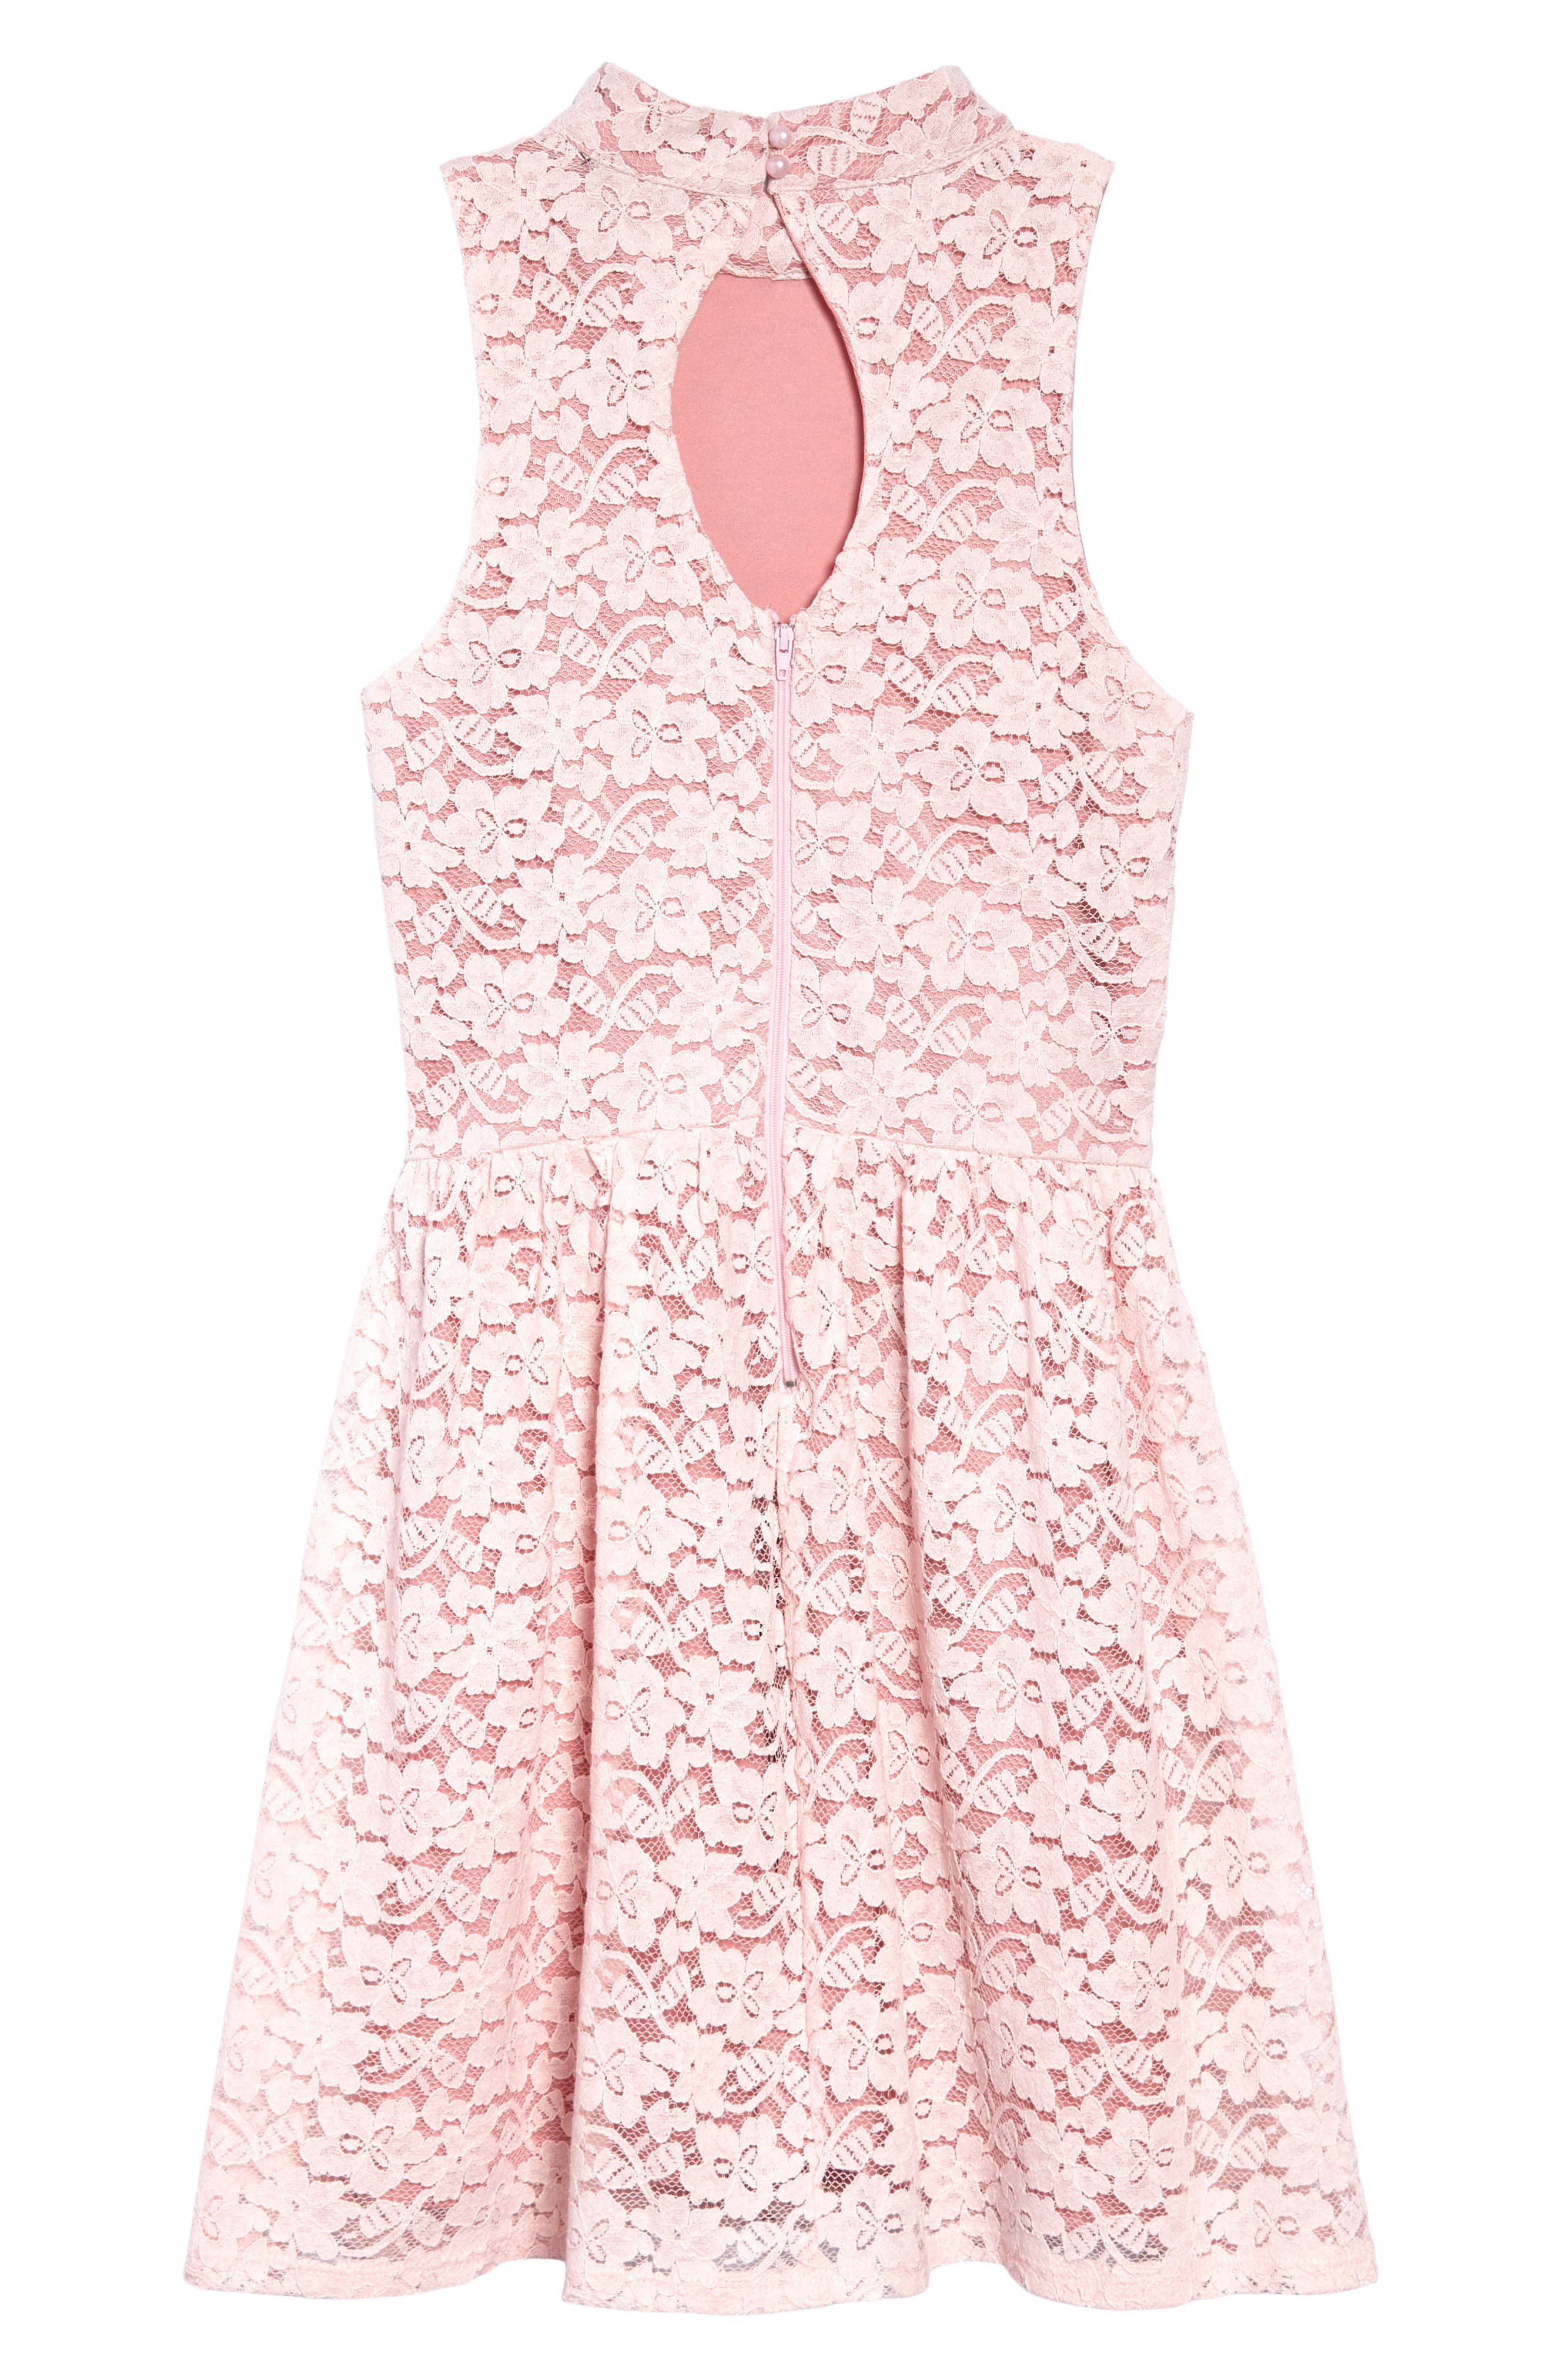 Hailee Lace Dress,                             Alternate thumbnail 2, color,                             Pink